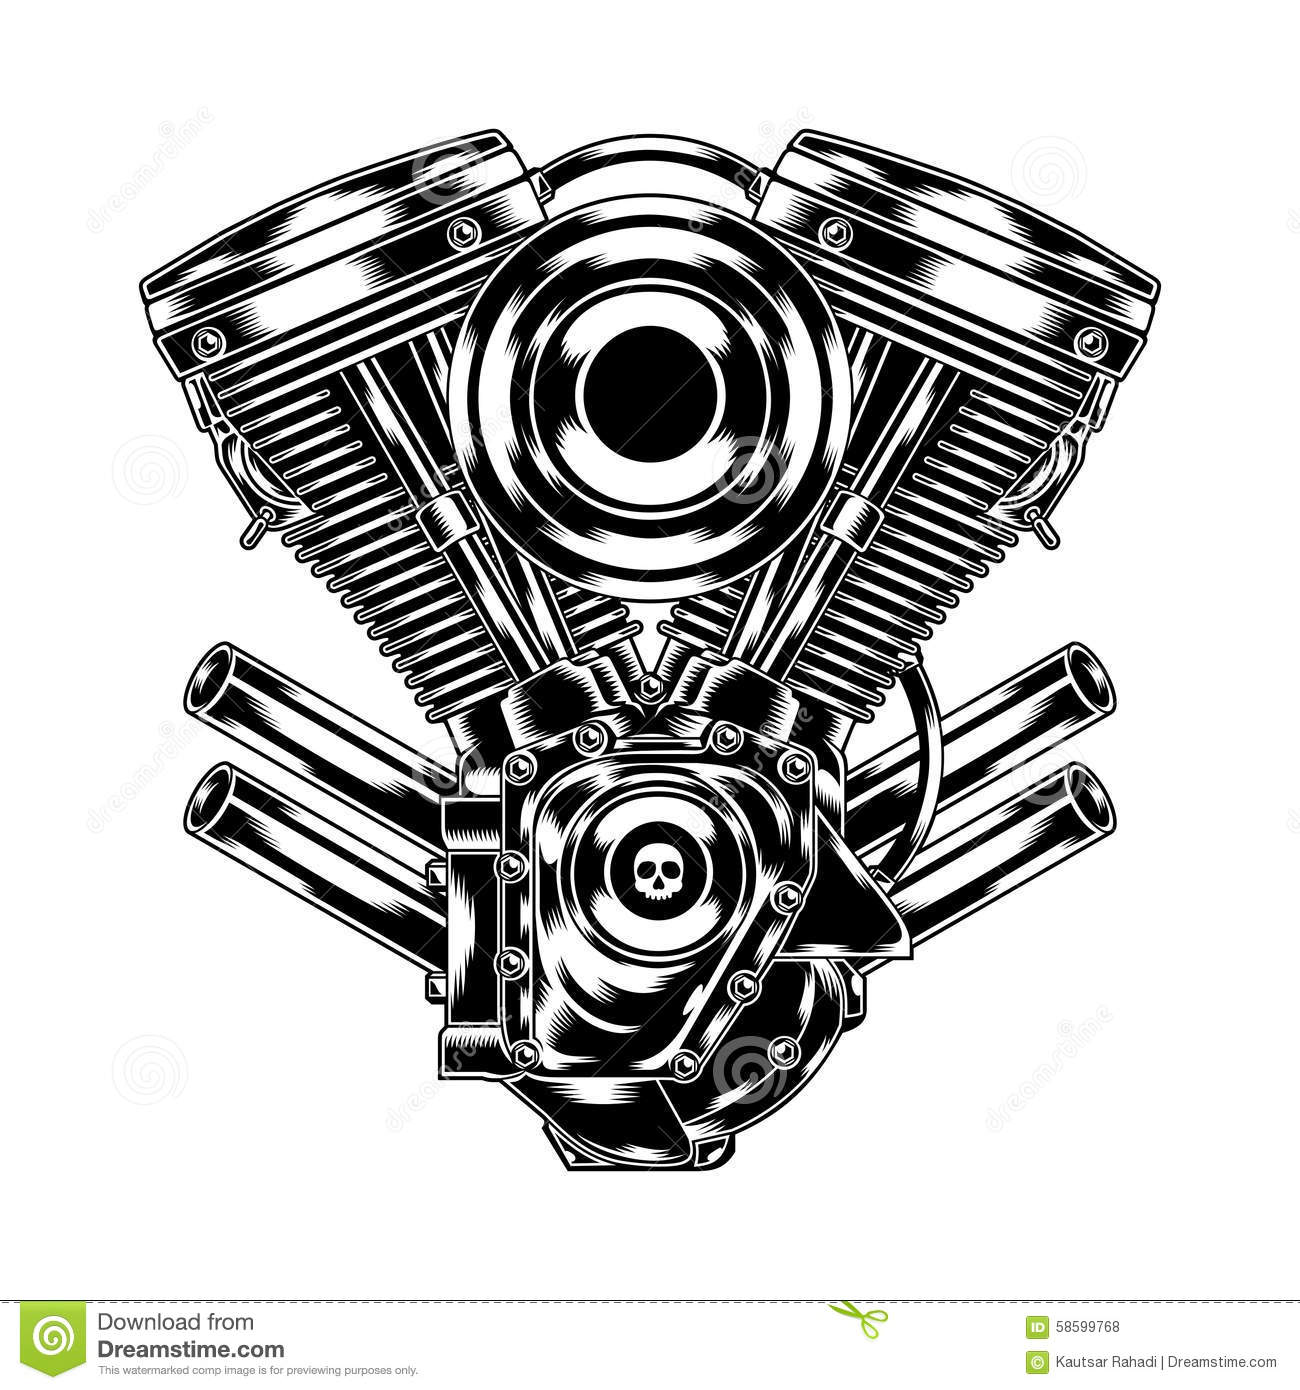 Motorcycle Engine Stock Vector Illustration Of Speed